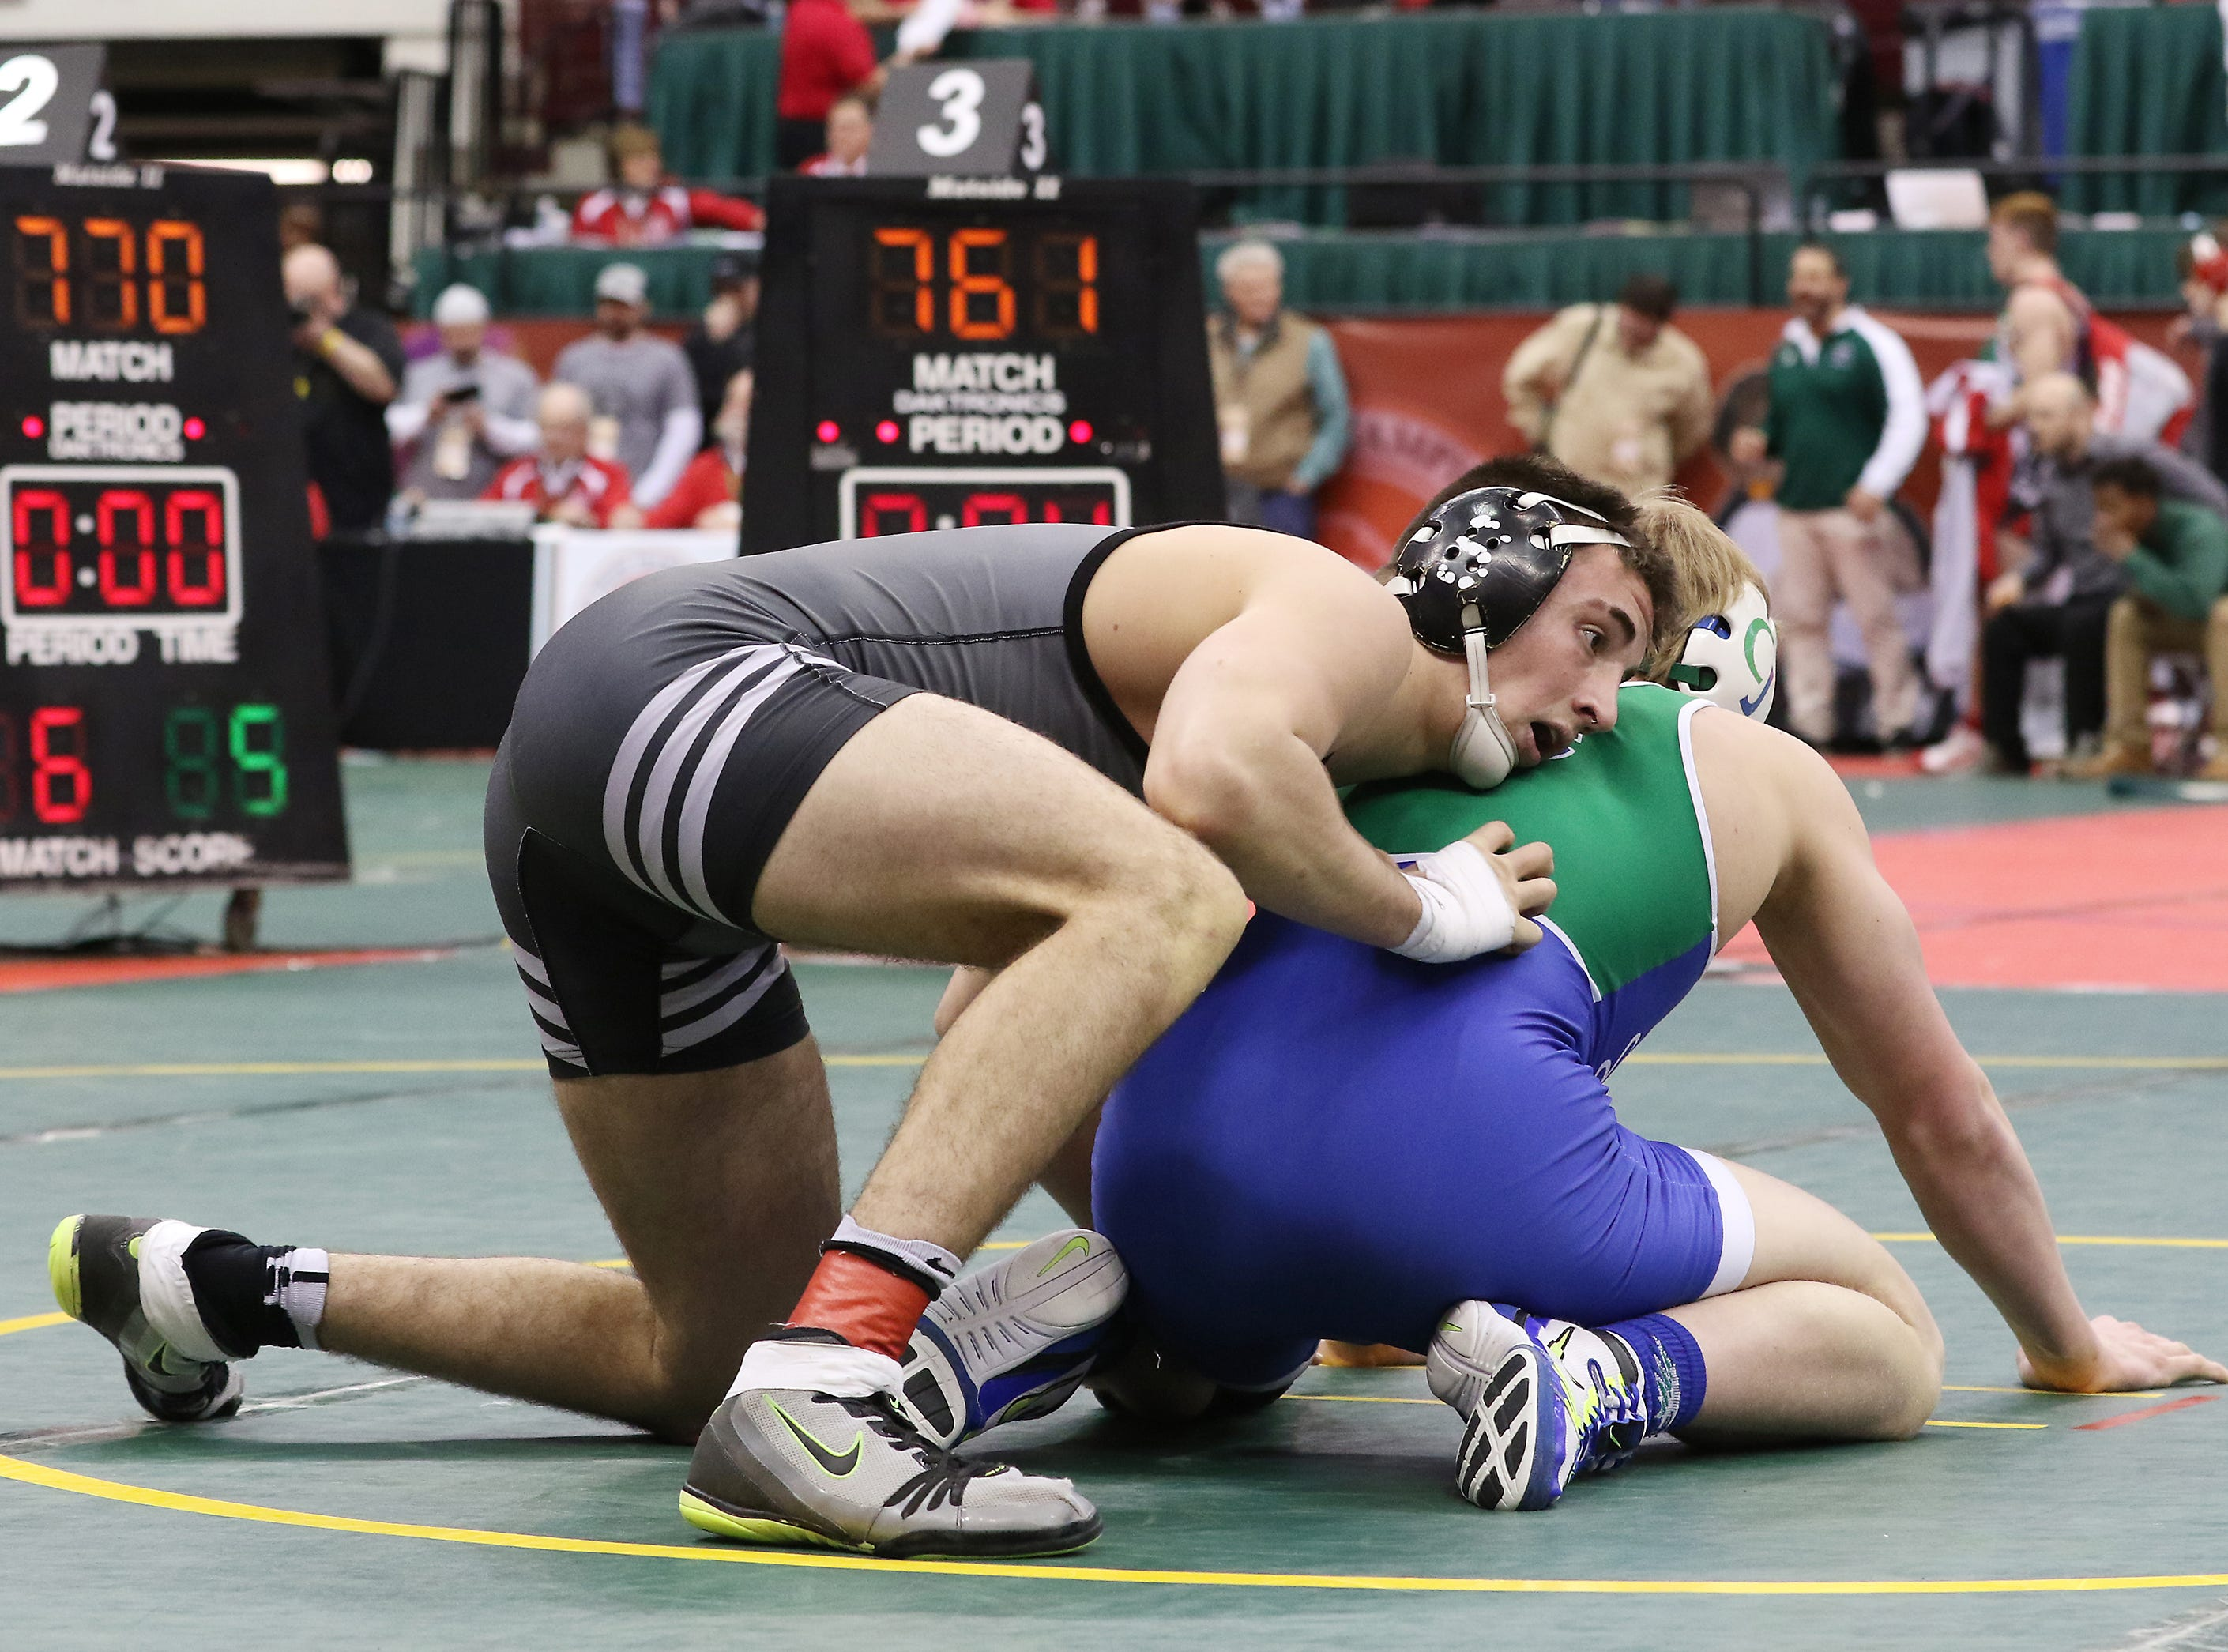 Sheridan's Chance King wrestles Dayton Chaminade Julienne's Hunter Johns in the 182 pound consolations at the Division II state wrestling tournament on Friday.